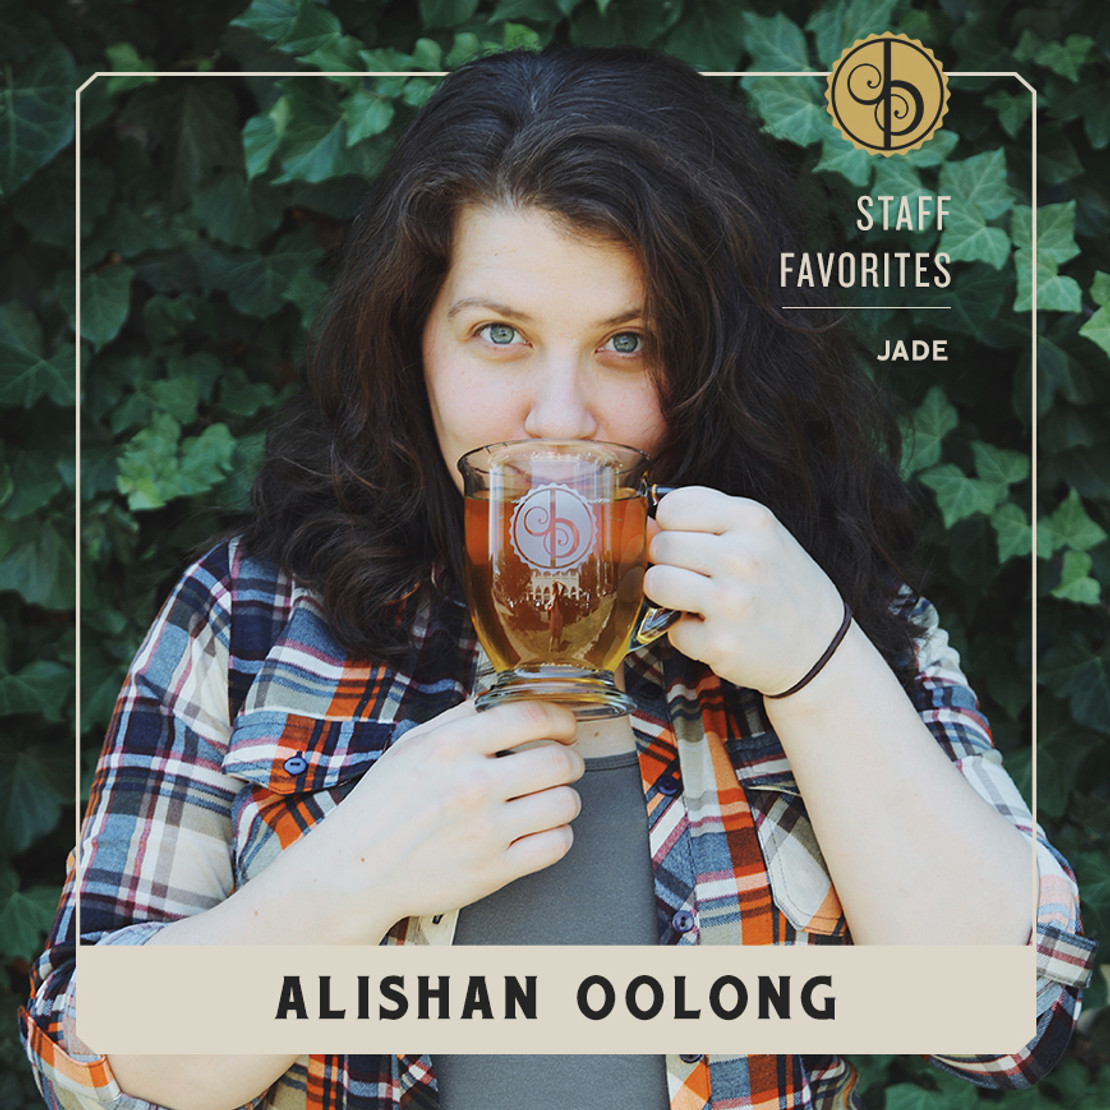 Staff Favorites: Jade & Alishan Oolong